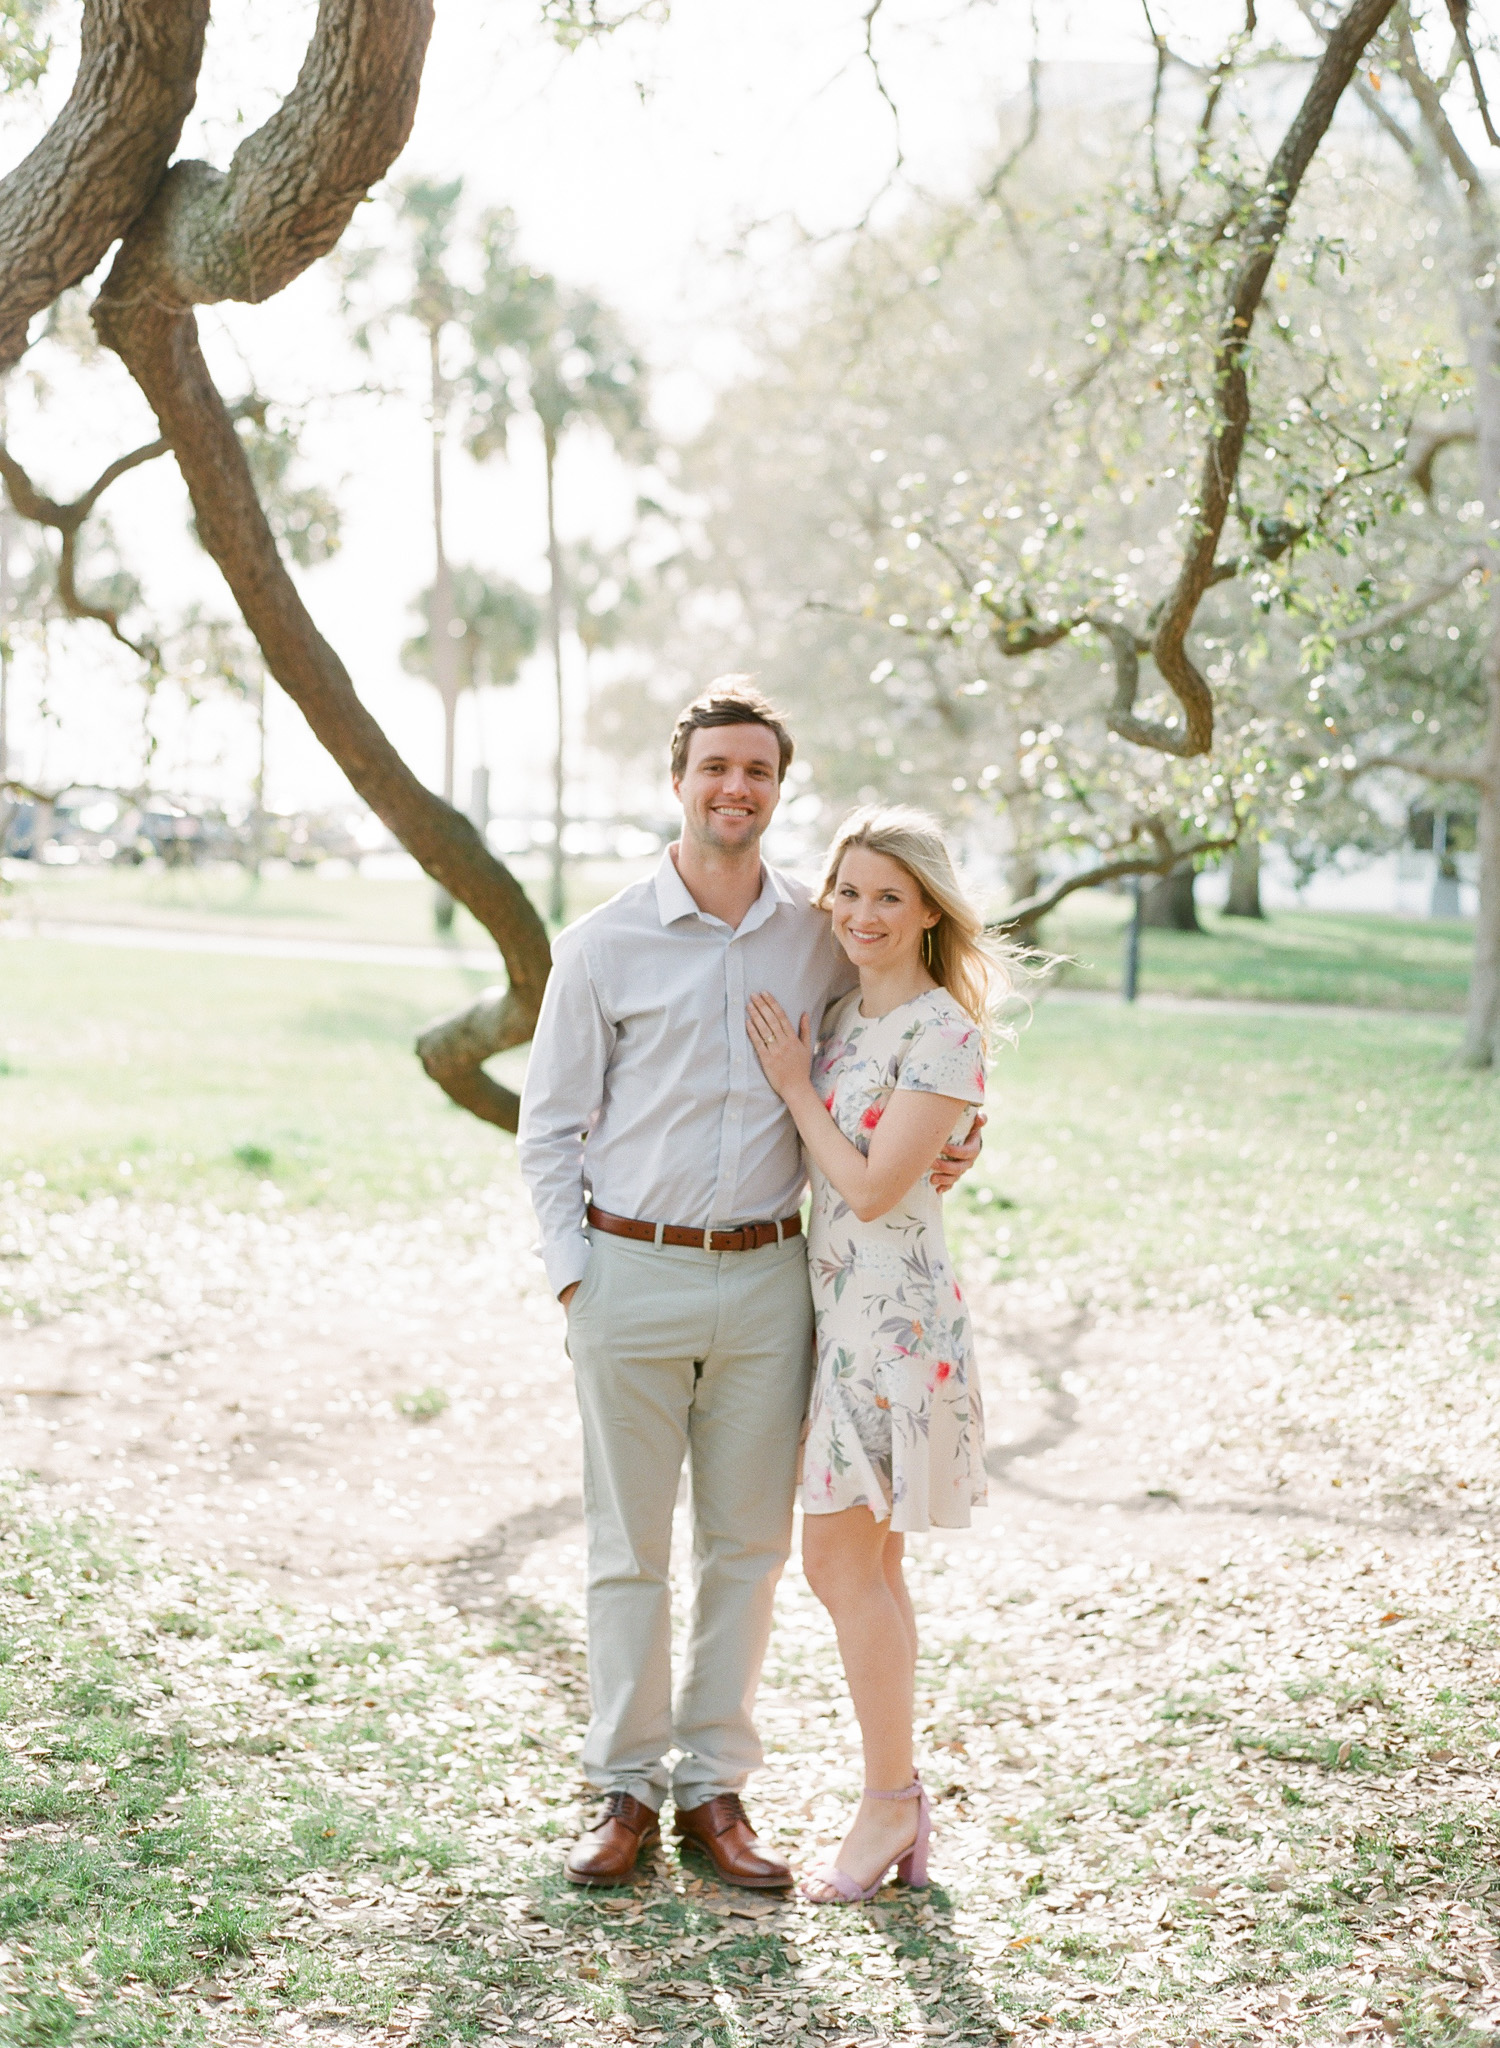 Charleston-Engagement-Session-Photos-44.jpg